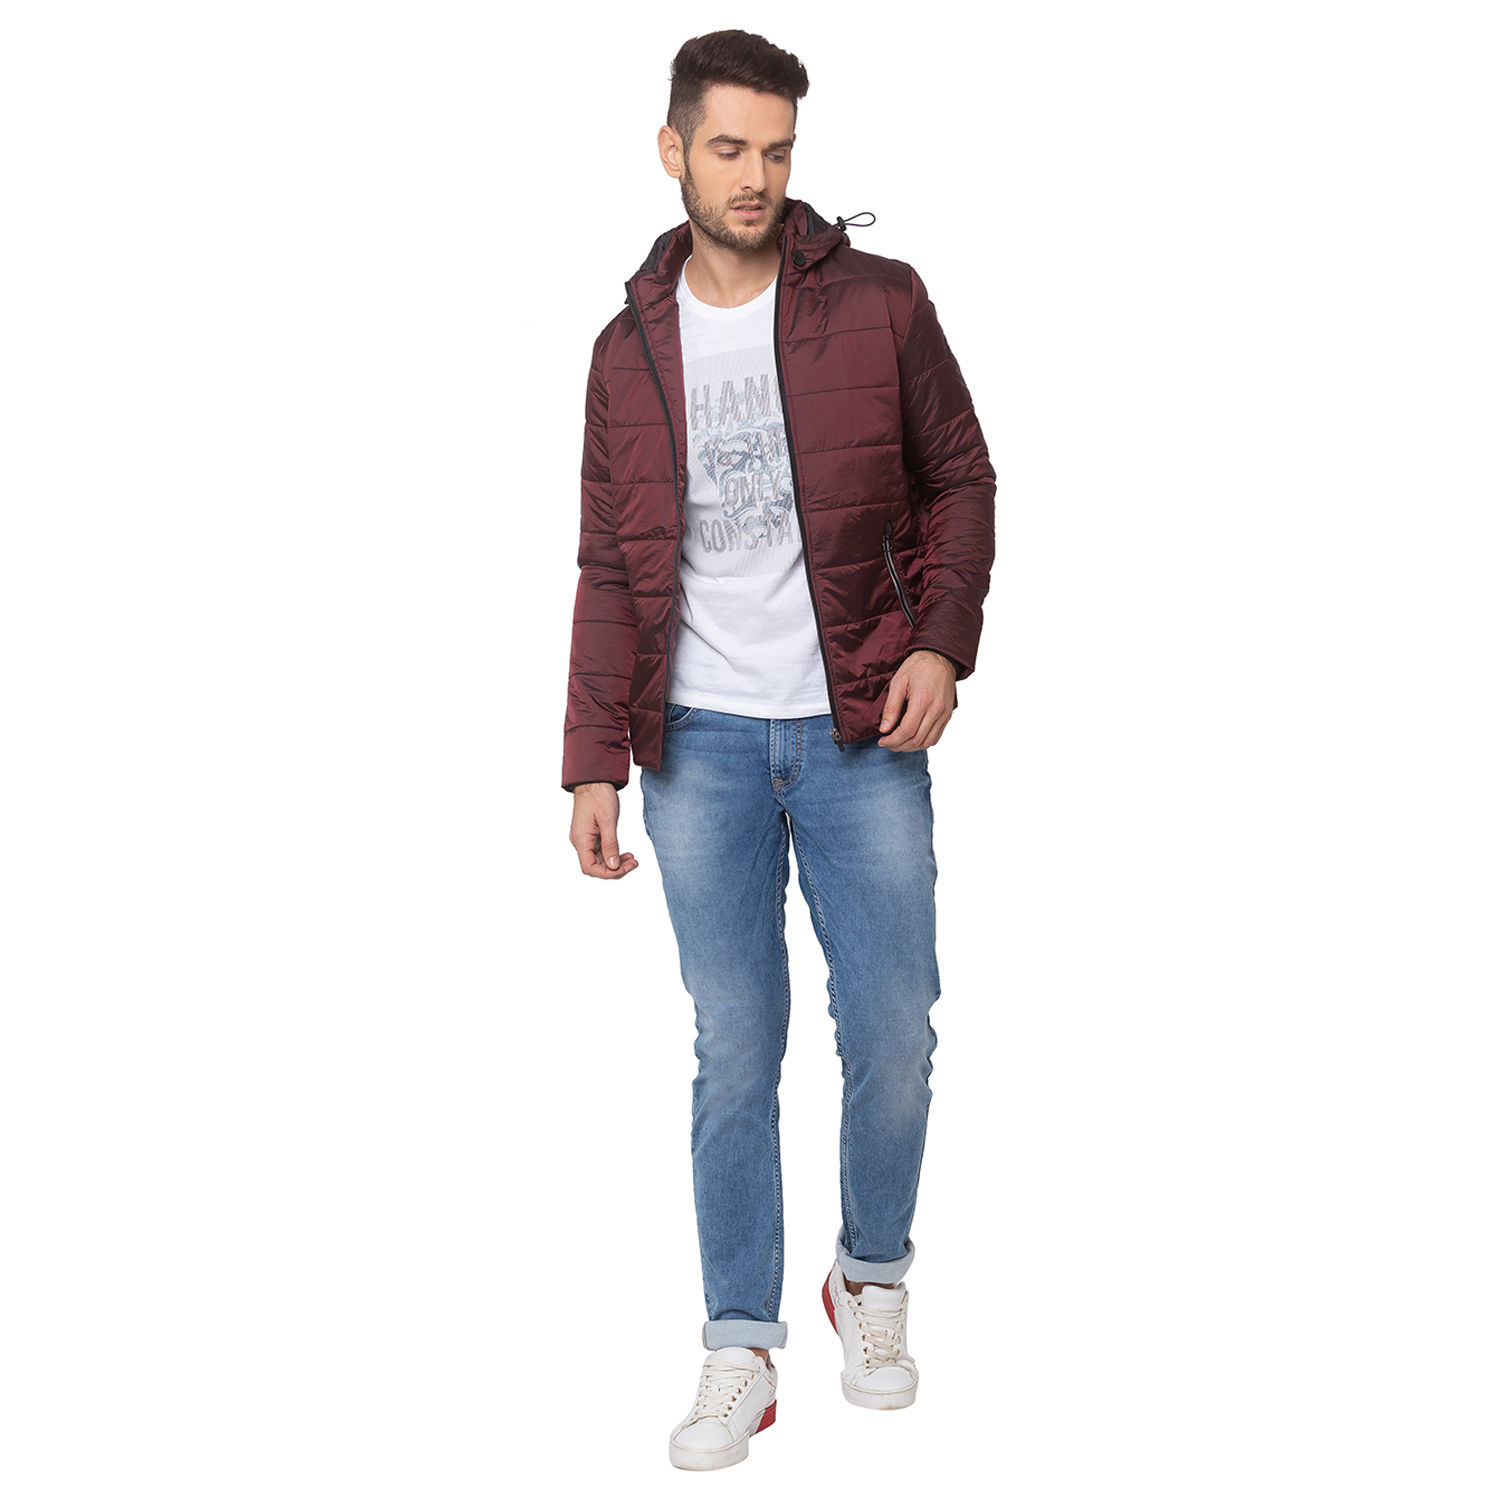 SPYKAR Wine NYLON STRAIGHT FIT JACKETS